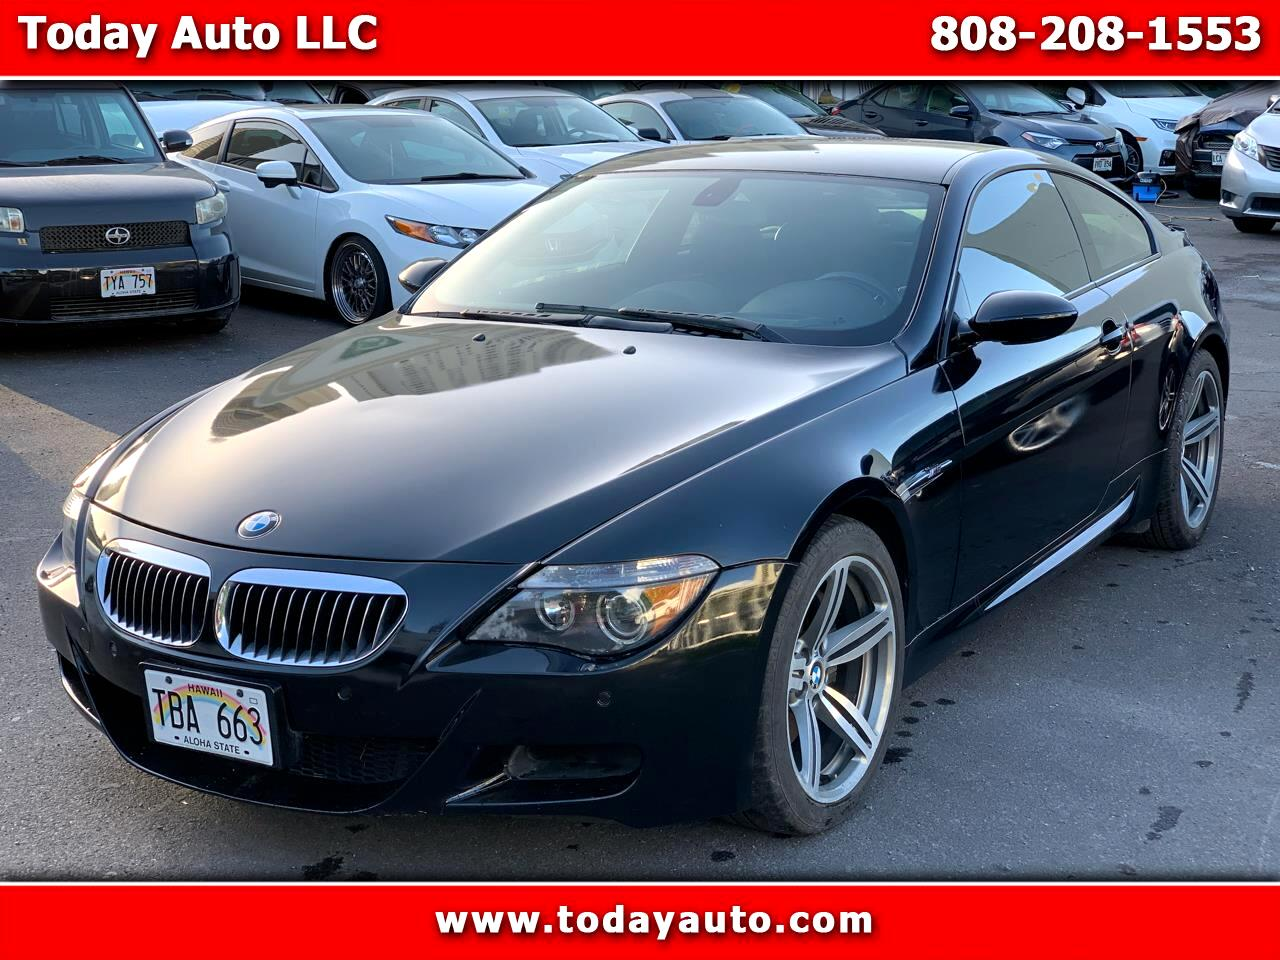 BMW M6 Coupe 2006